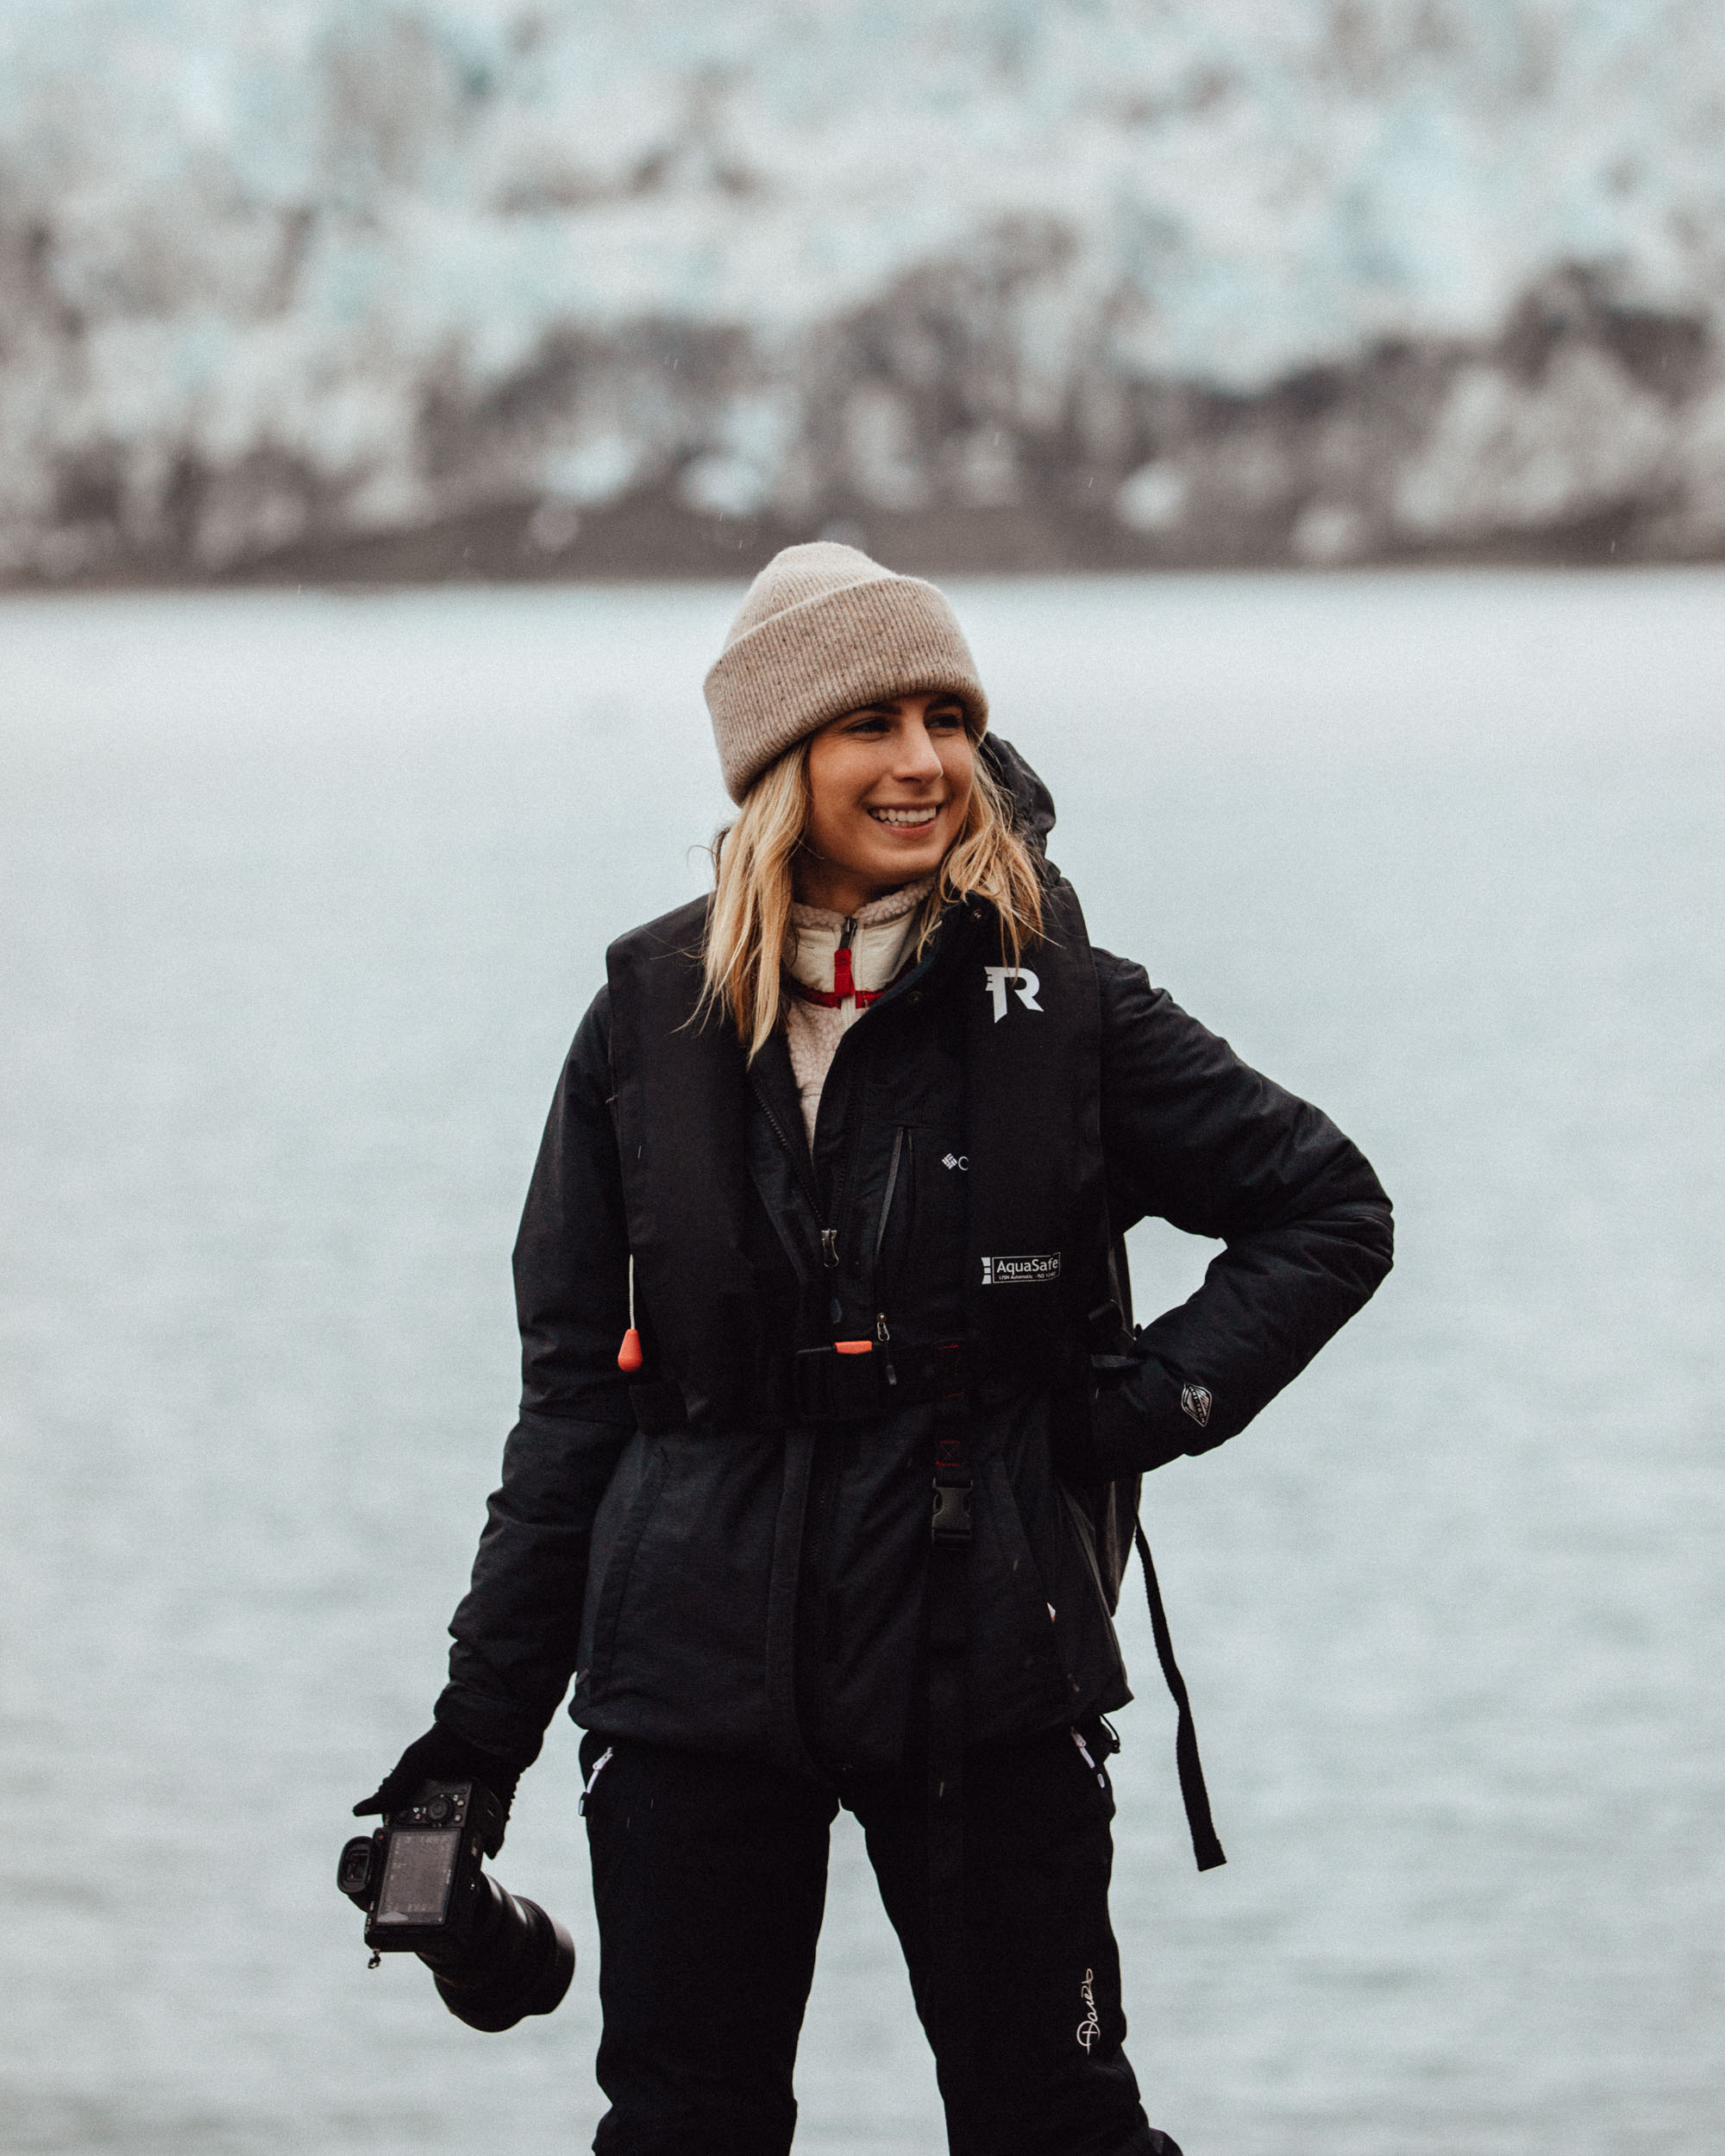 Photographing Glaciers and Landscapes in Svalbard Norway Selena Taylor of Find Us Lost